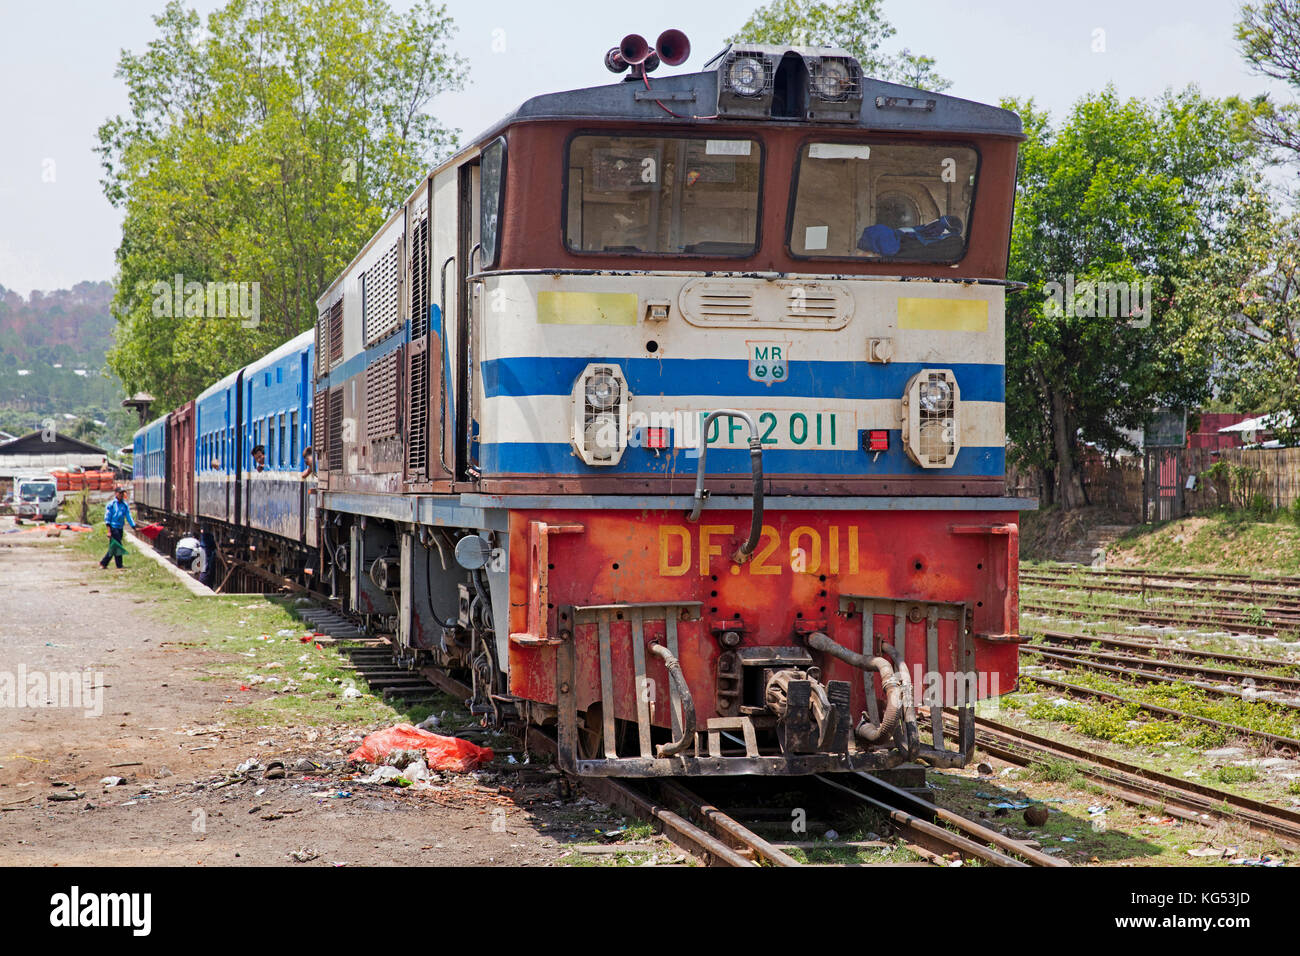 Old train on the Burma railway at the town Aungban in the Kalaw Township, Taunggyi District, Shan State, Myanmar - Stock Image